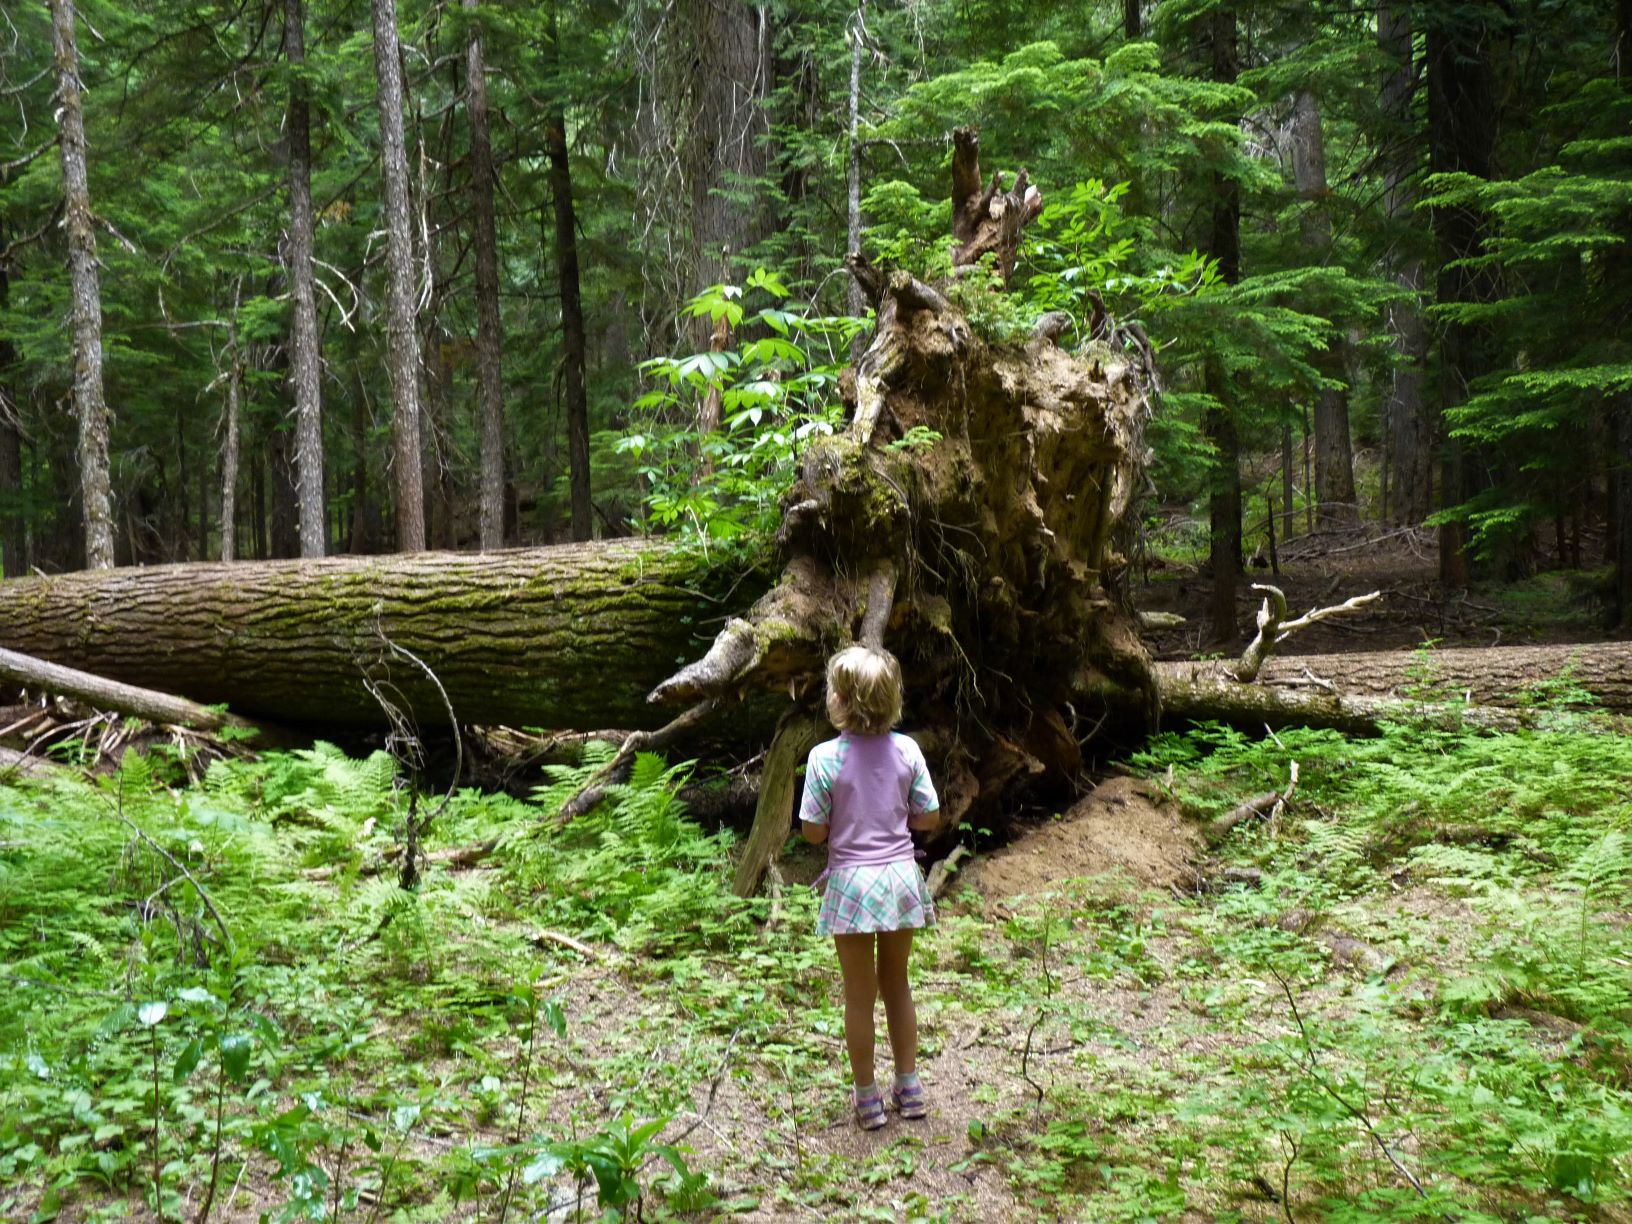 A little girl standing in front of a fallen tree.